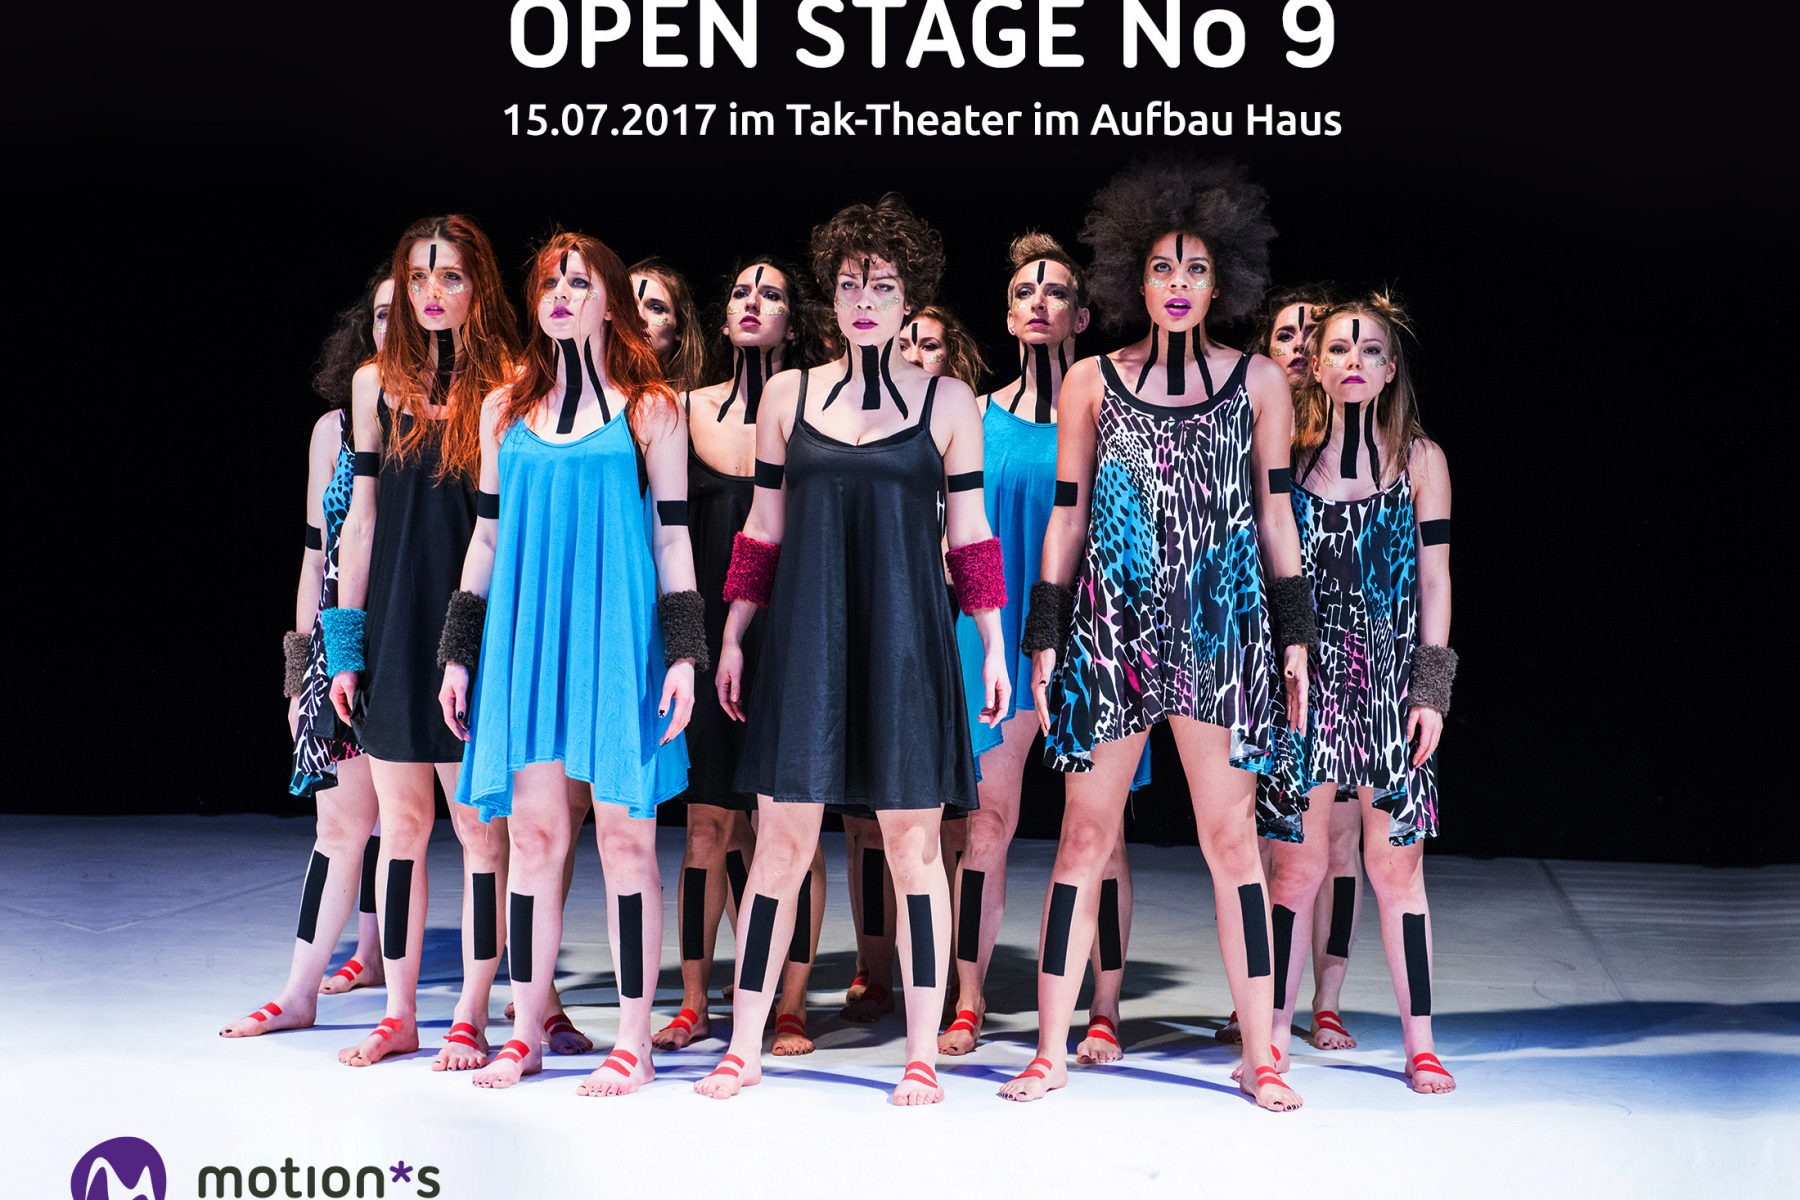 motion*s Tanzstudio open stage 9 Promo